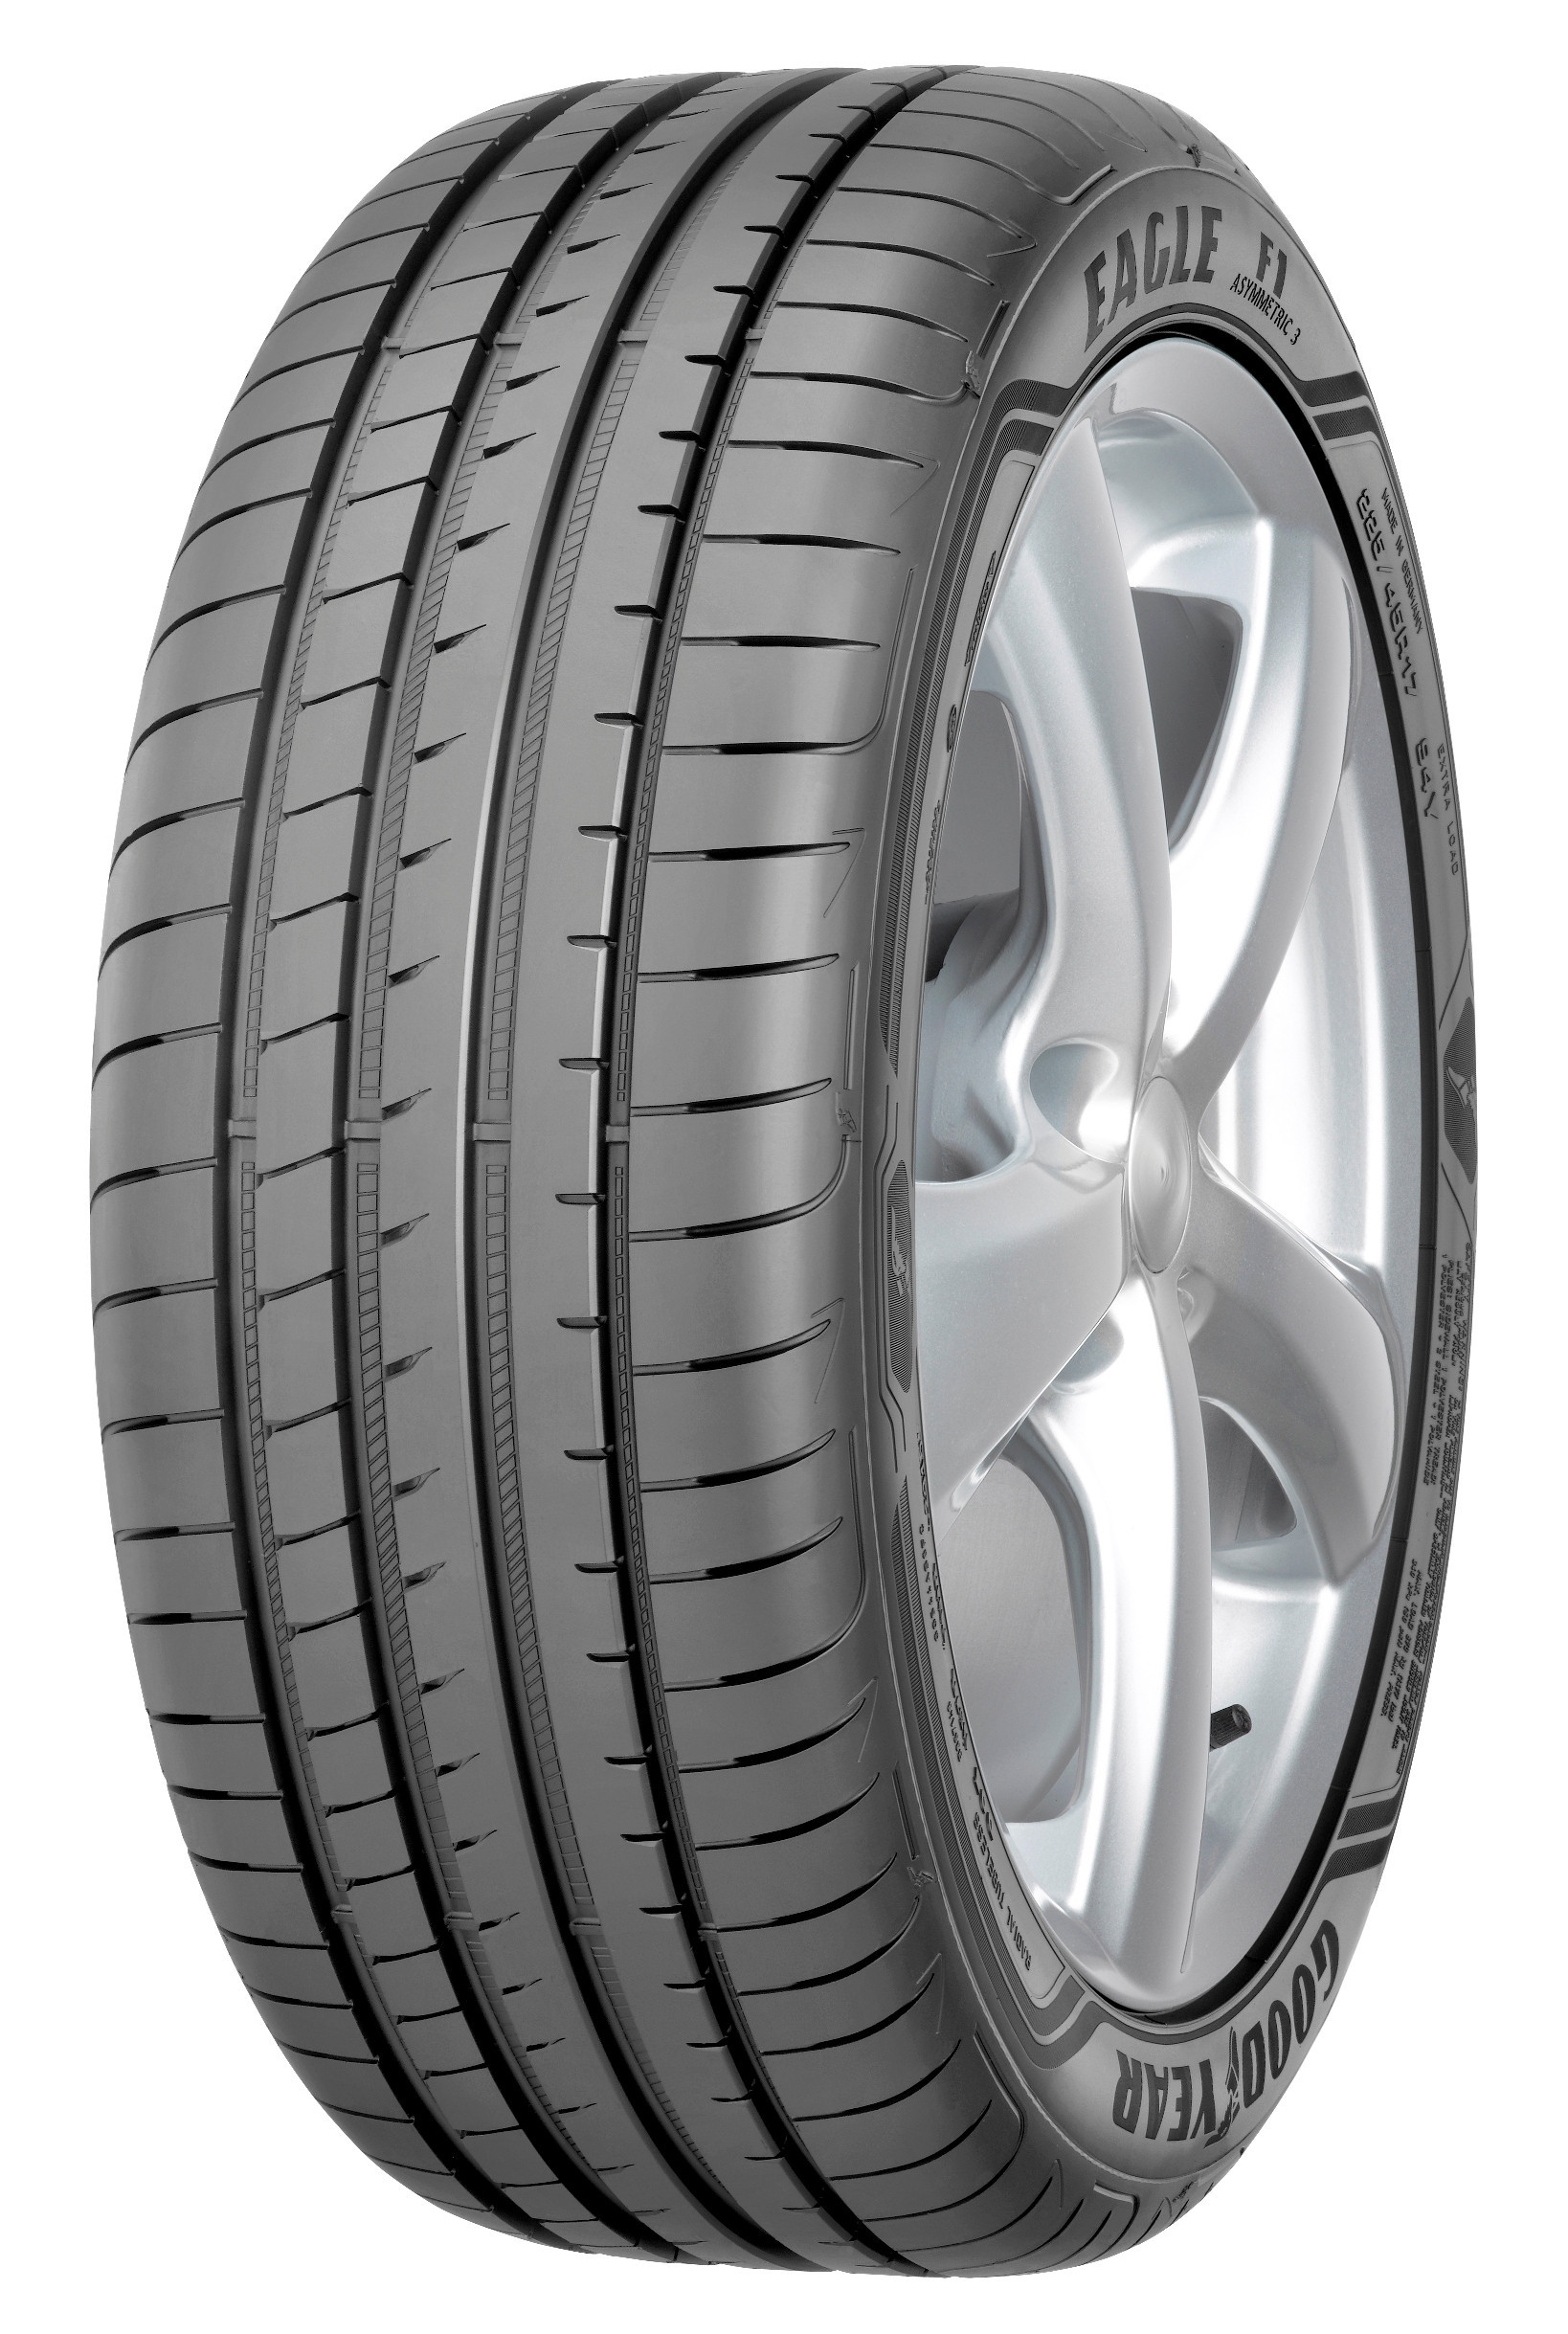 Anvelopa Vara 245/40R19 98Y Goodyear Eagle F1 Asymmetric 3 J Xl